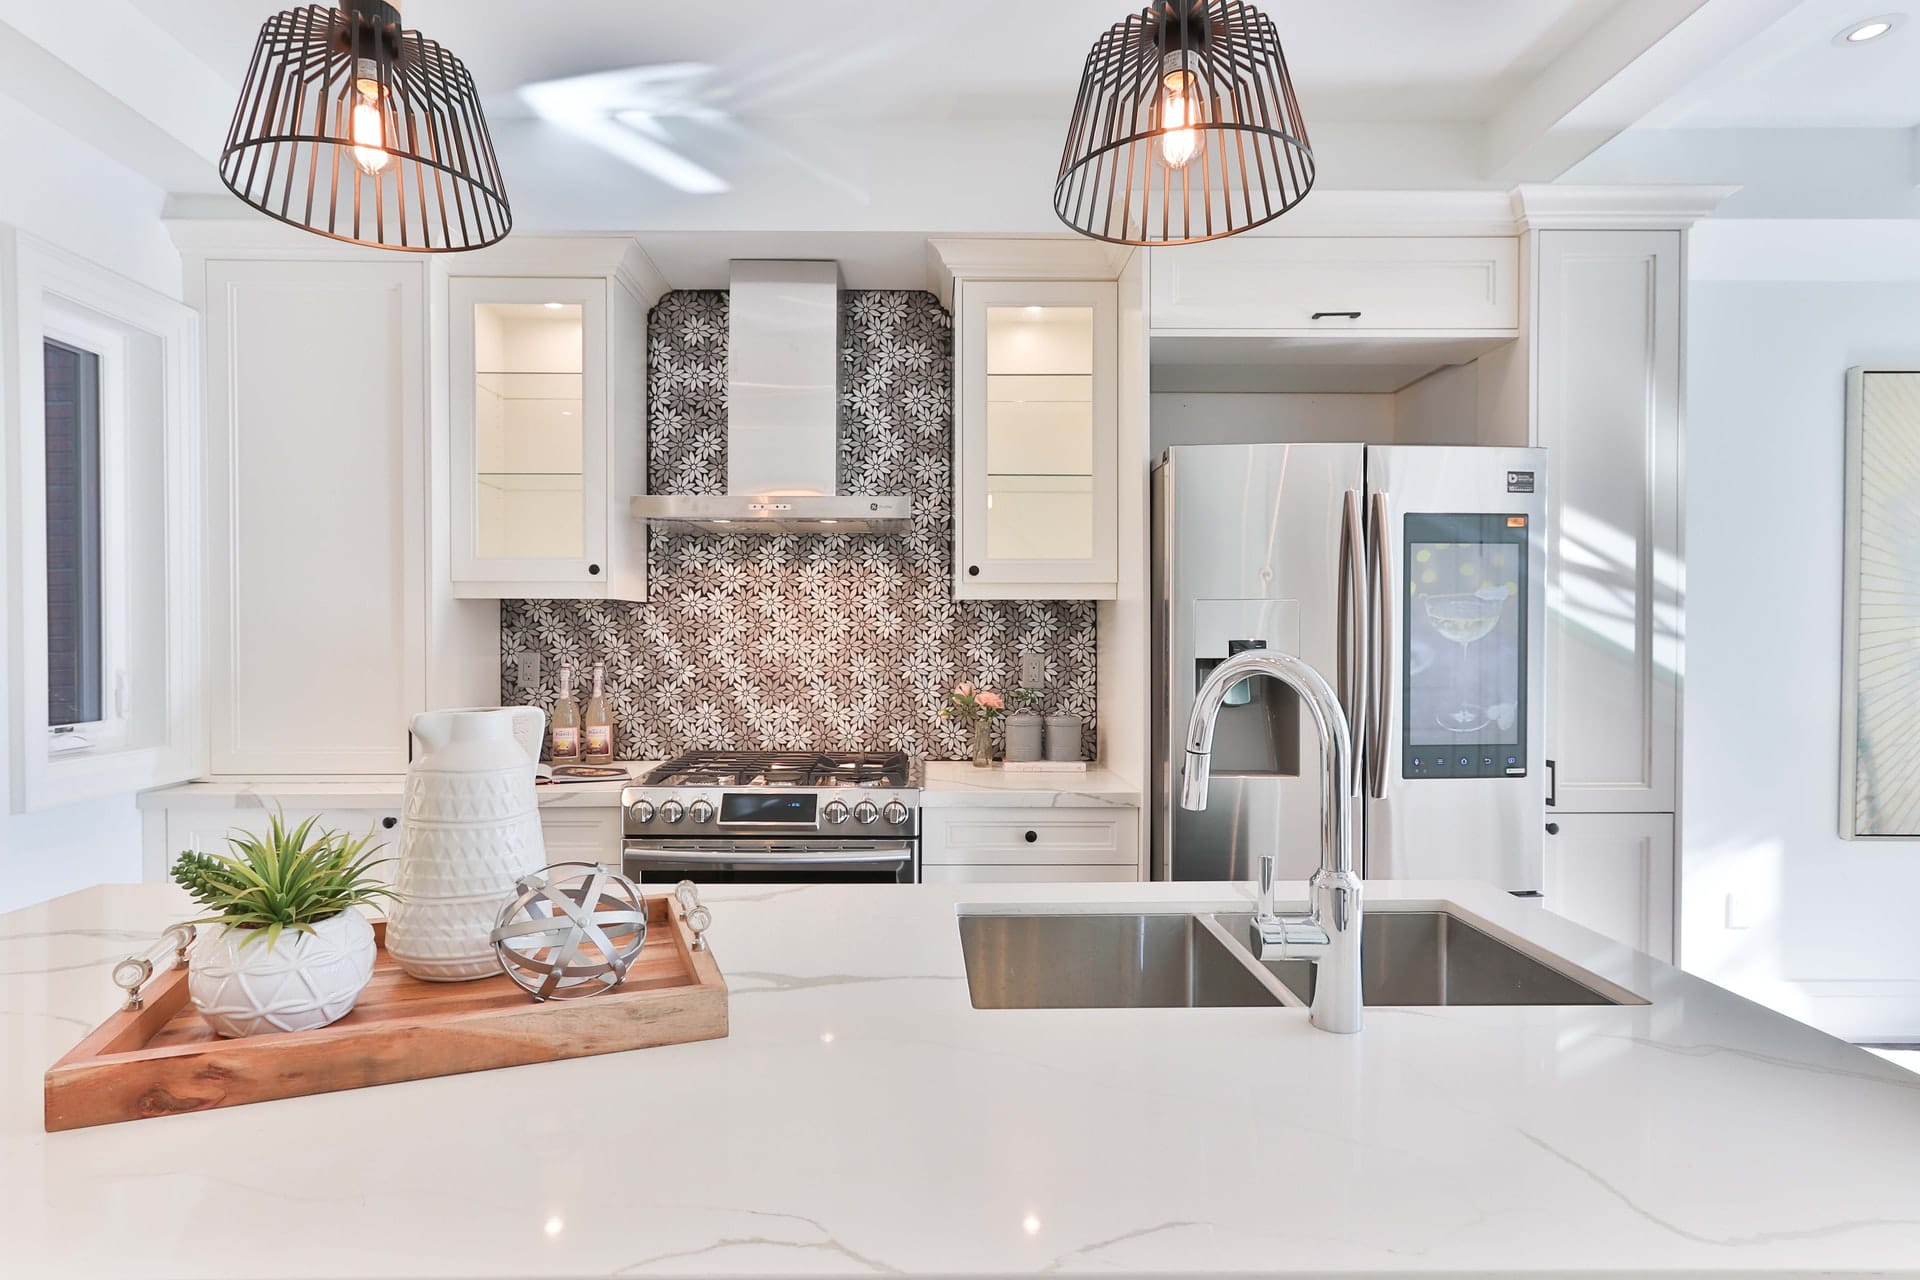 TMDC Group-Construction and Renovation - Photo of a model kitchen with floral tiles, backsplash and white marble counter top